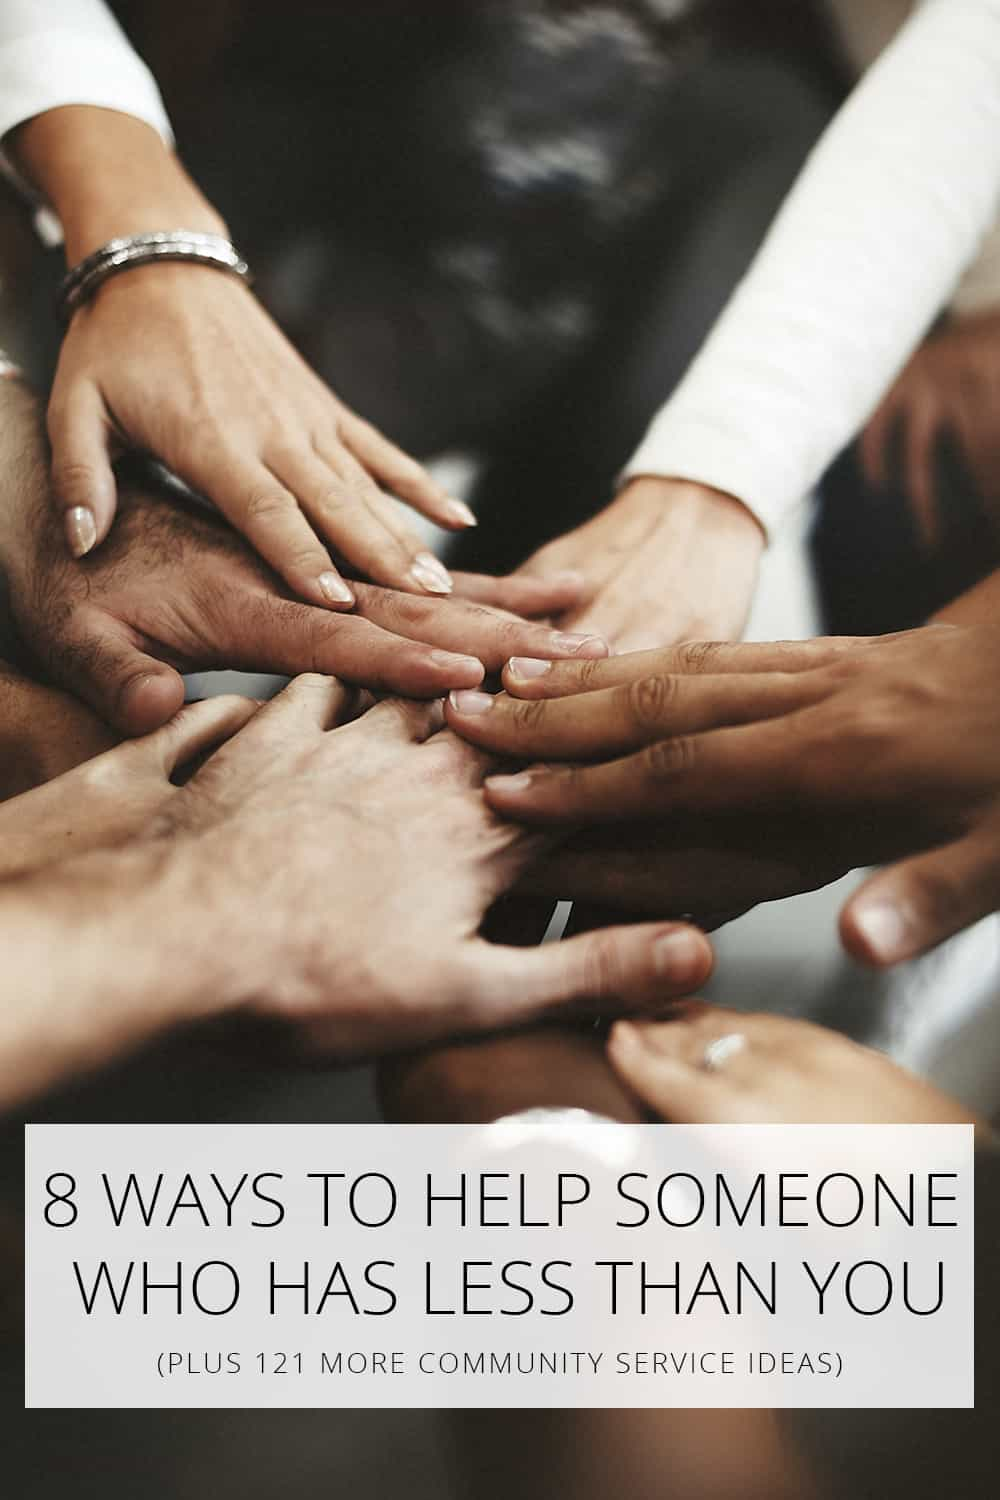 help someone who has less than you